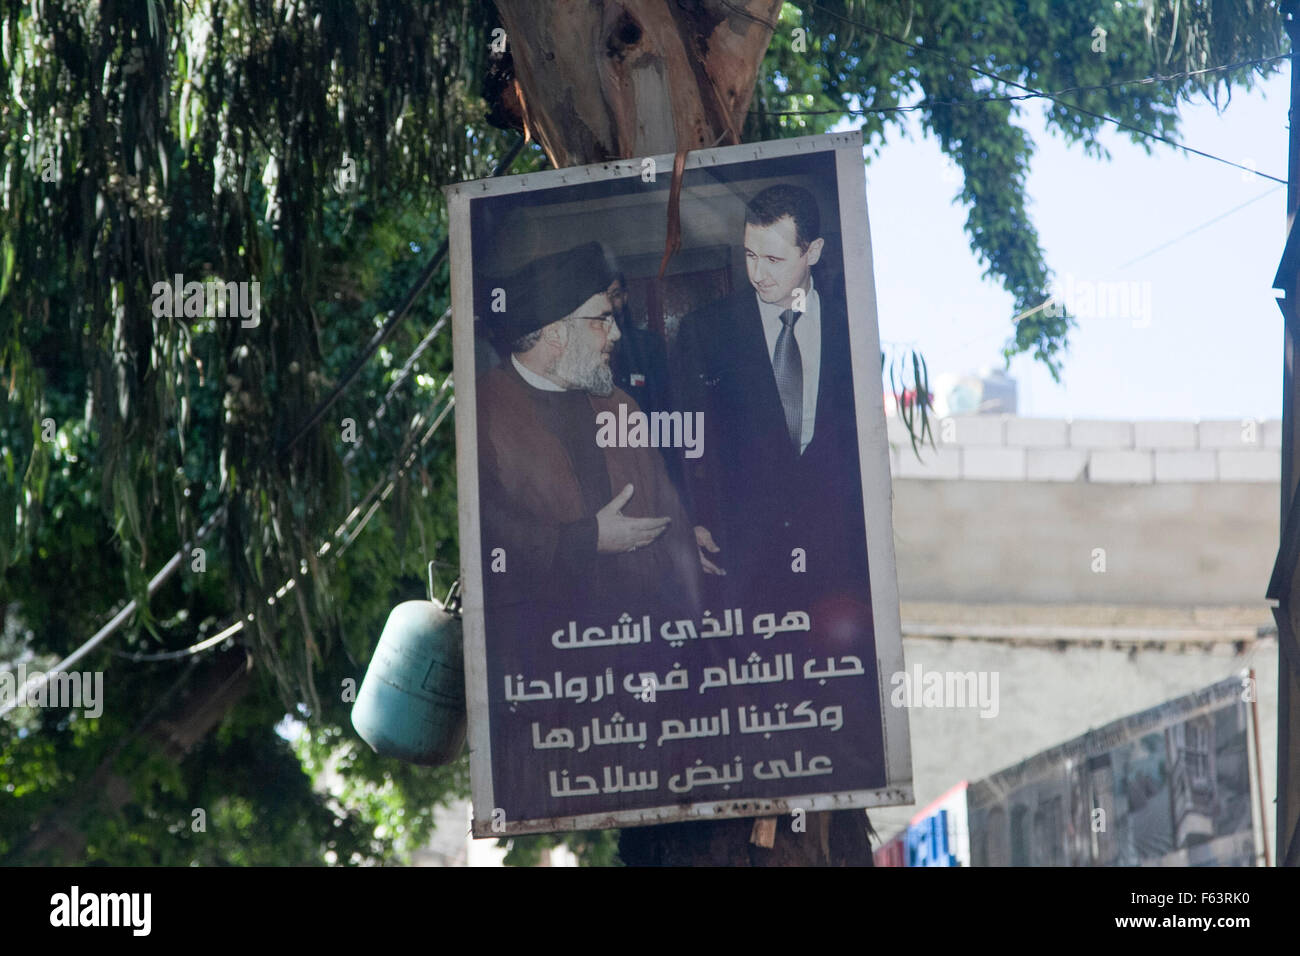 Beirut Lebanon, 11th November 2015. A poster showing President Assad of Syria (R) together with Hassan Nasrallah - Stock Image